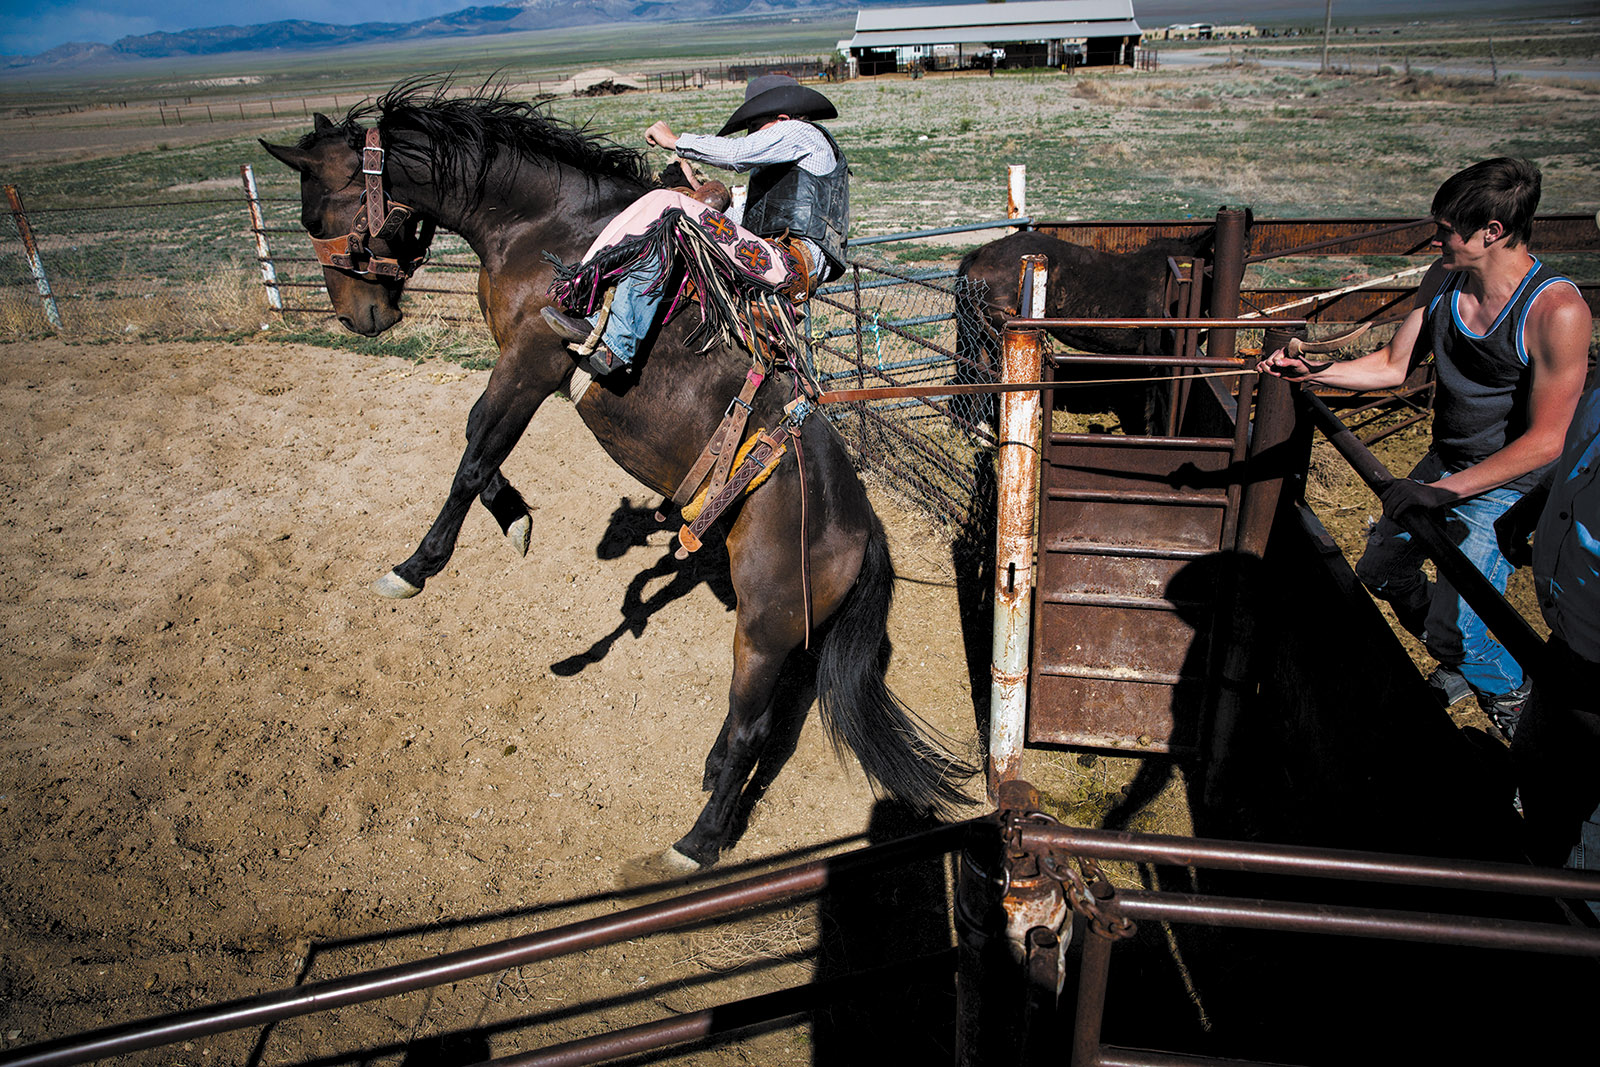 Ryder Wright on a bucking horse at his family's ranch, Milford, Utah, 2014